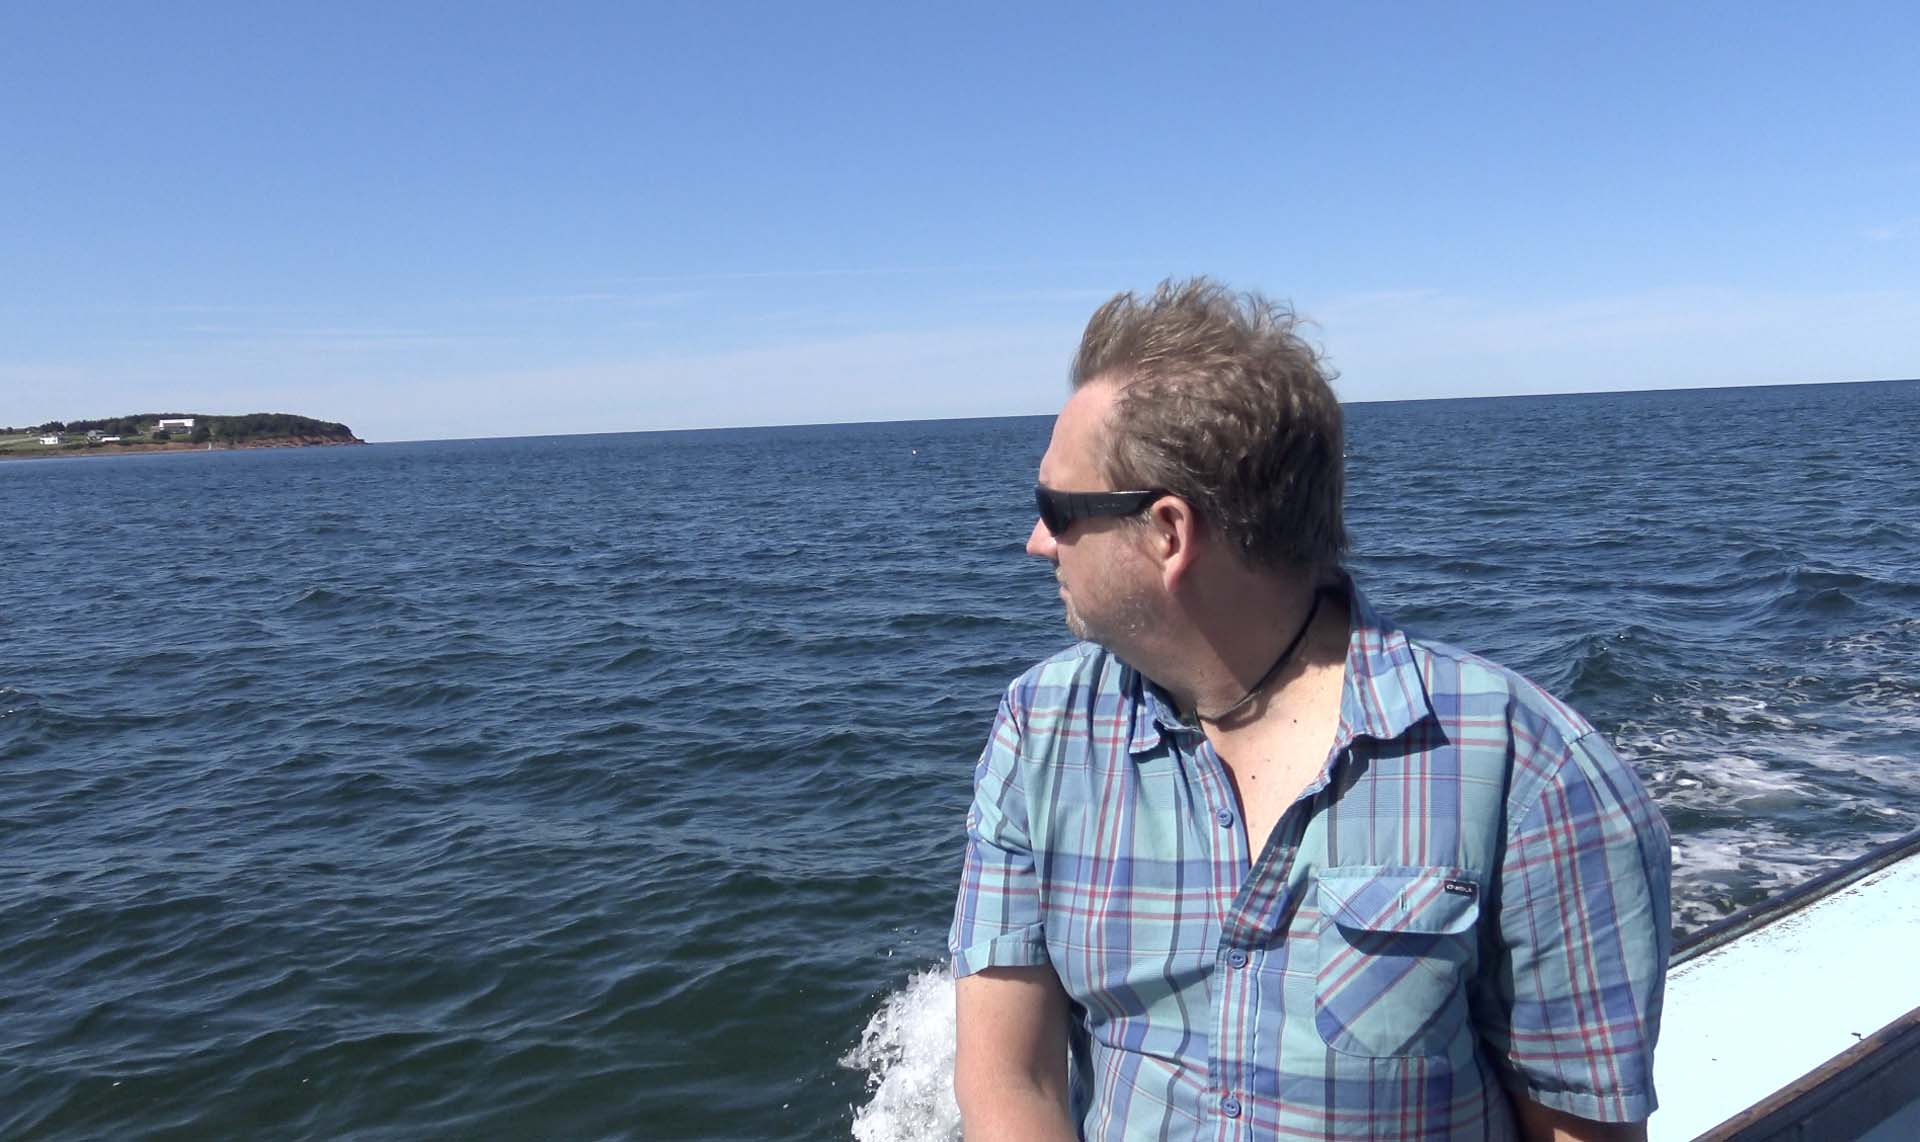 dave on boat tour in prince edward island